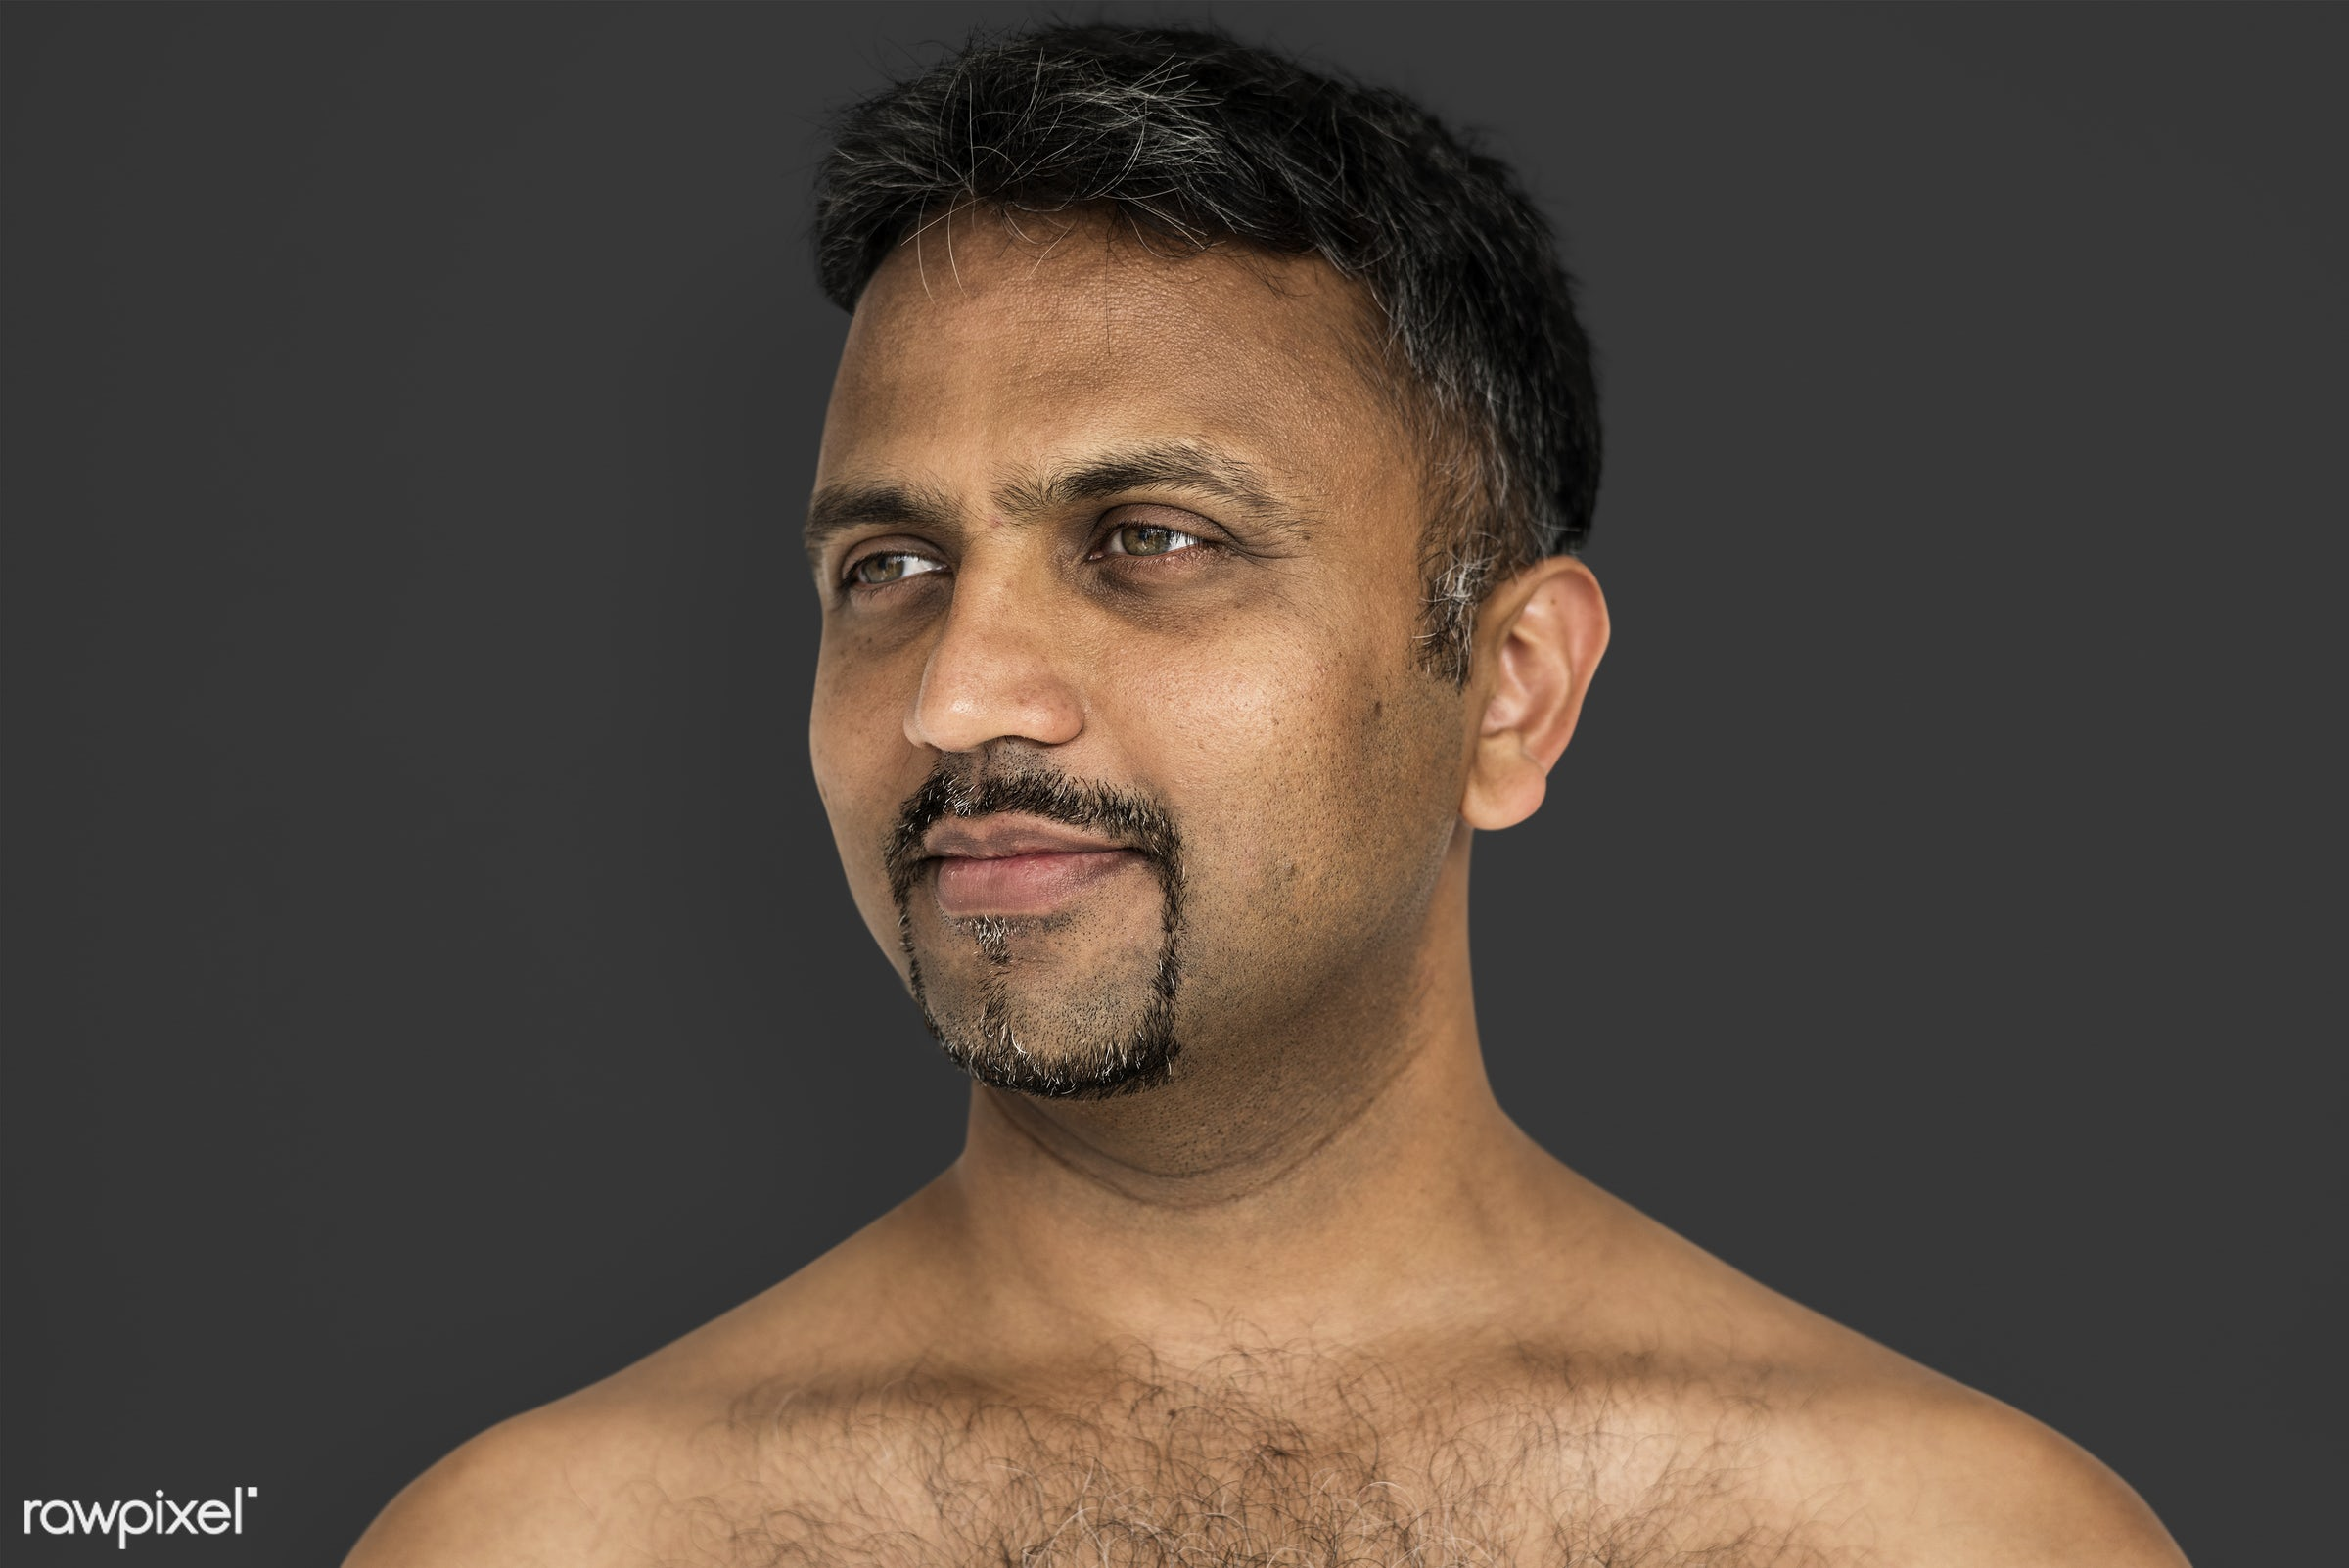 studio, face, person, joy, indian ethnicity, people, bare chest, looking, solo, happy, grey, smile, cheerful, man, smiling,...